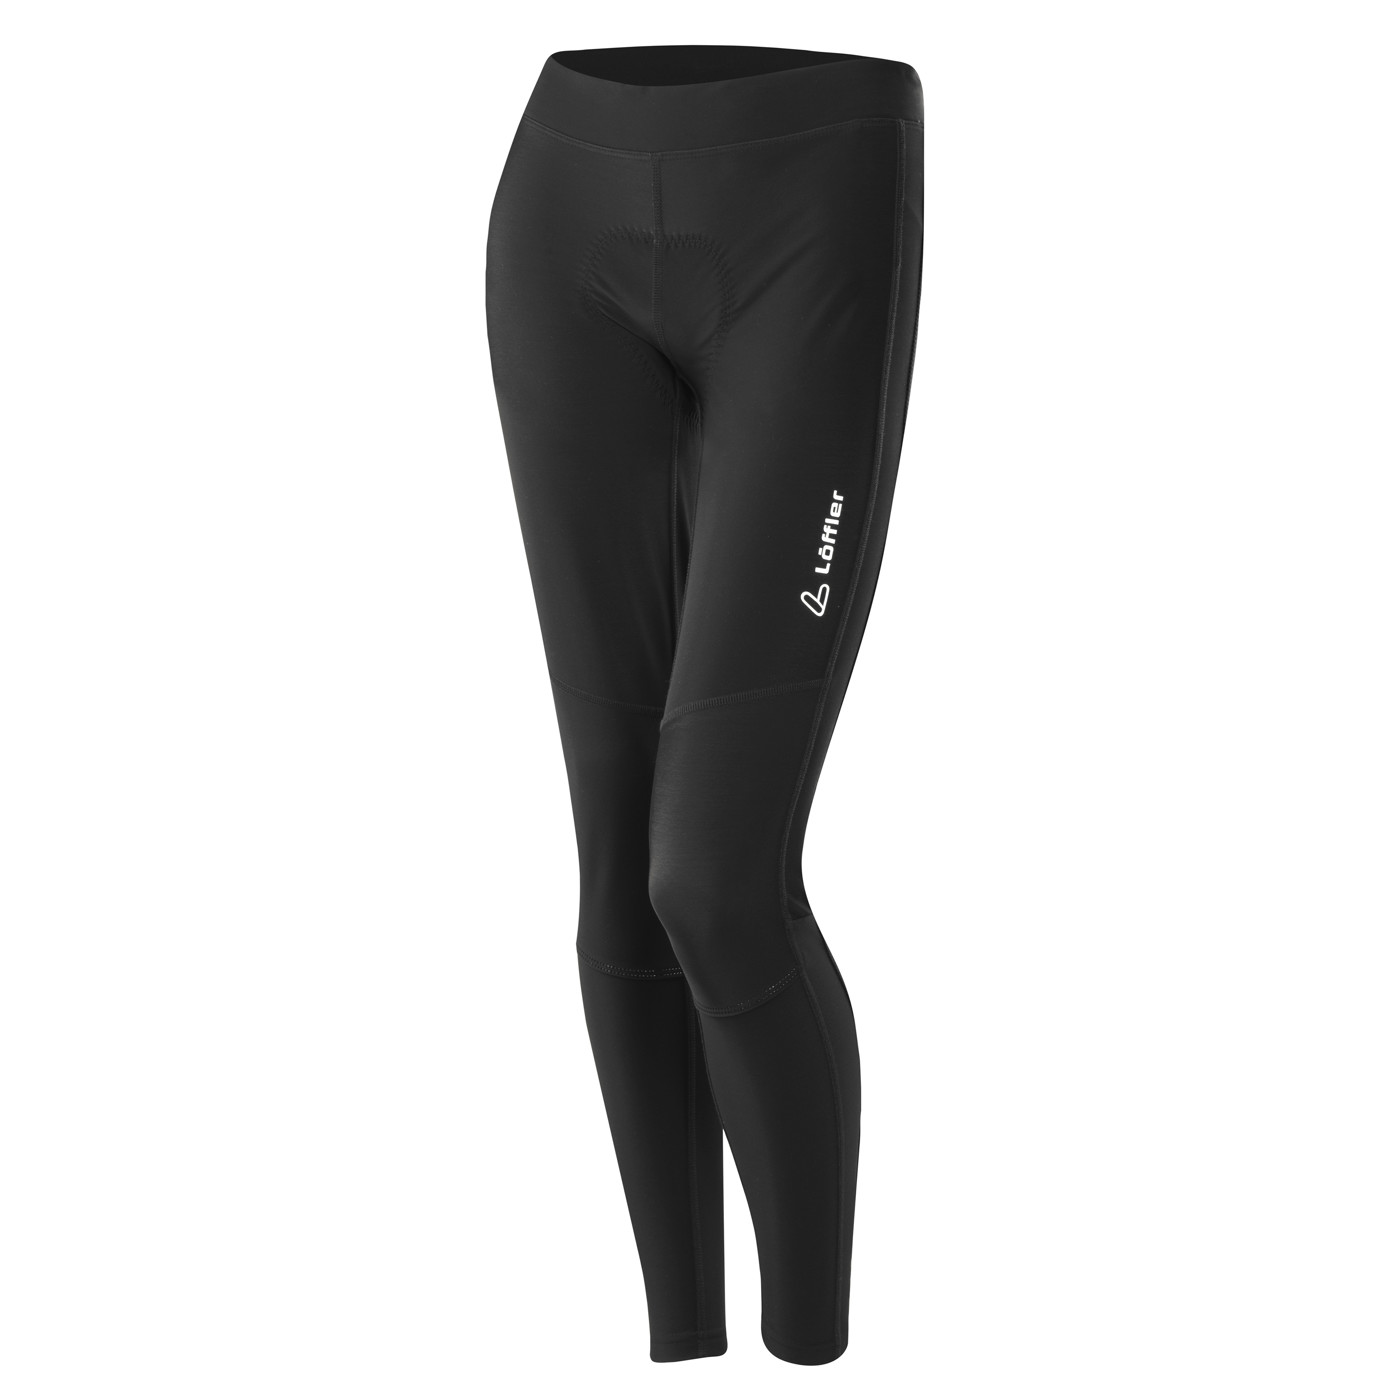 LÖFFLER W BIKE TIGHTS HOTBOND RF GEL - Damen